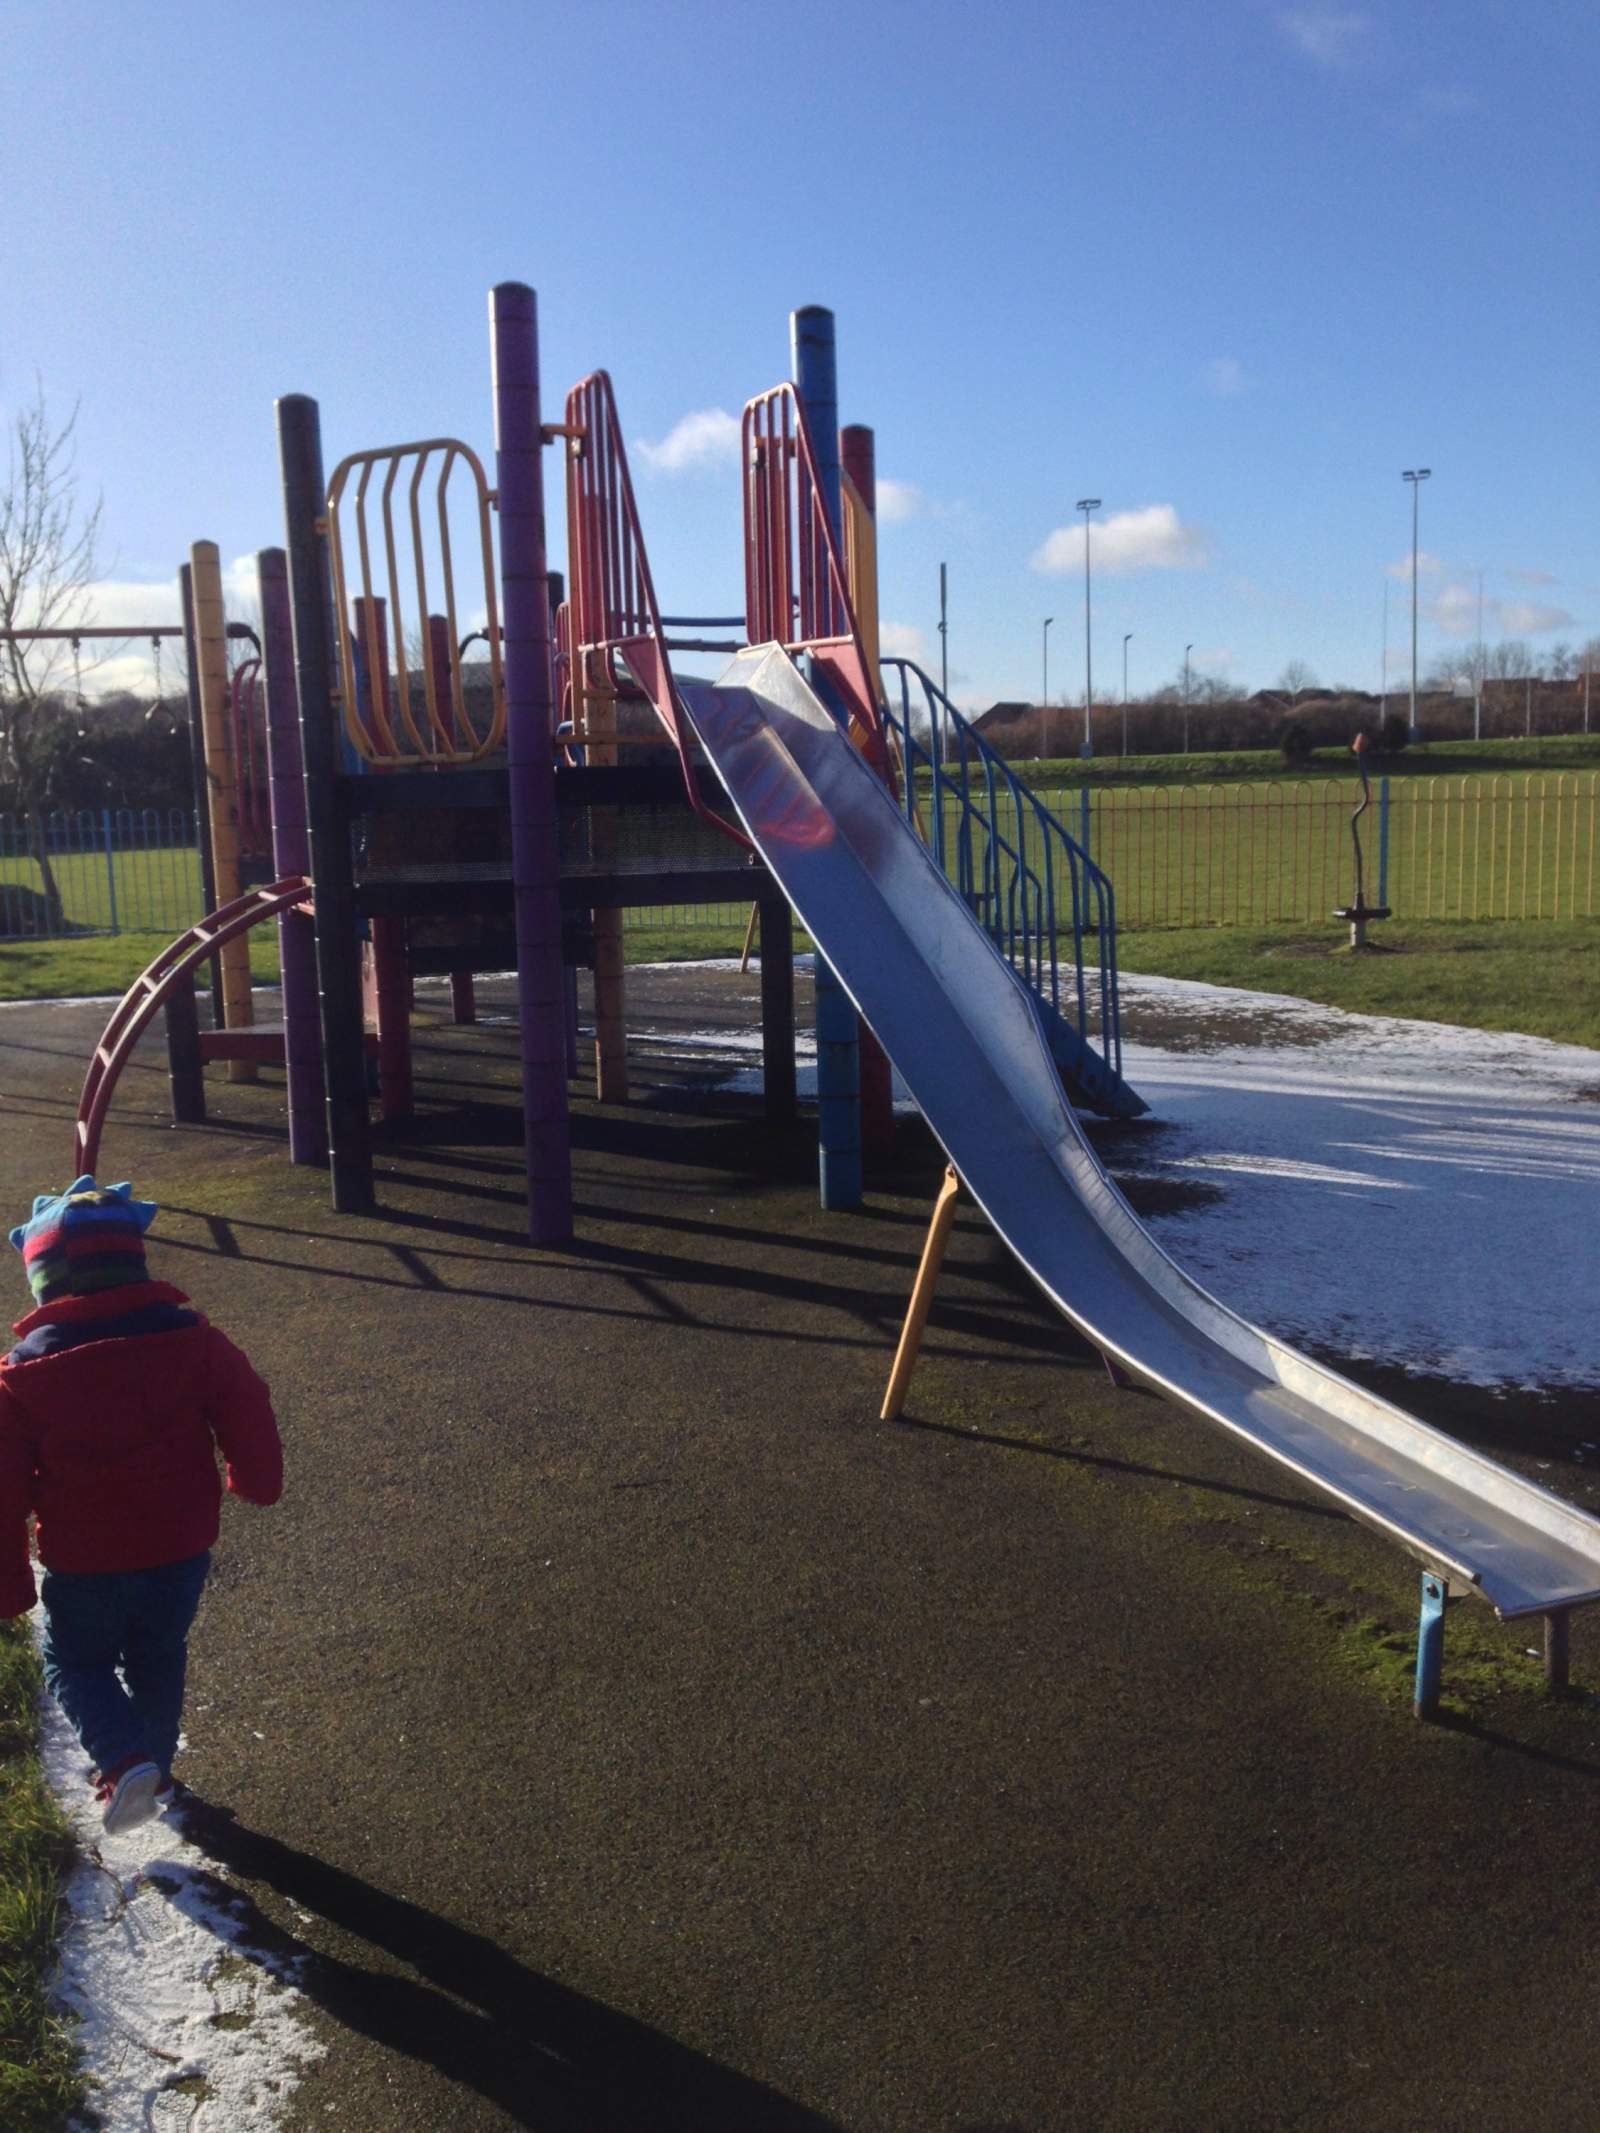 Playgrounds in North Tyneside – Pool Park